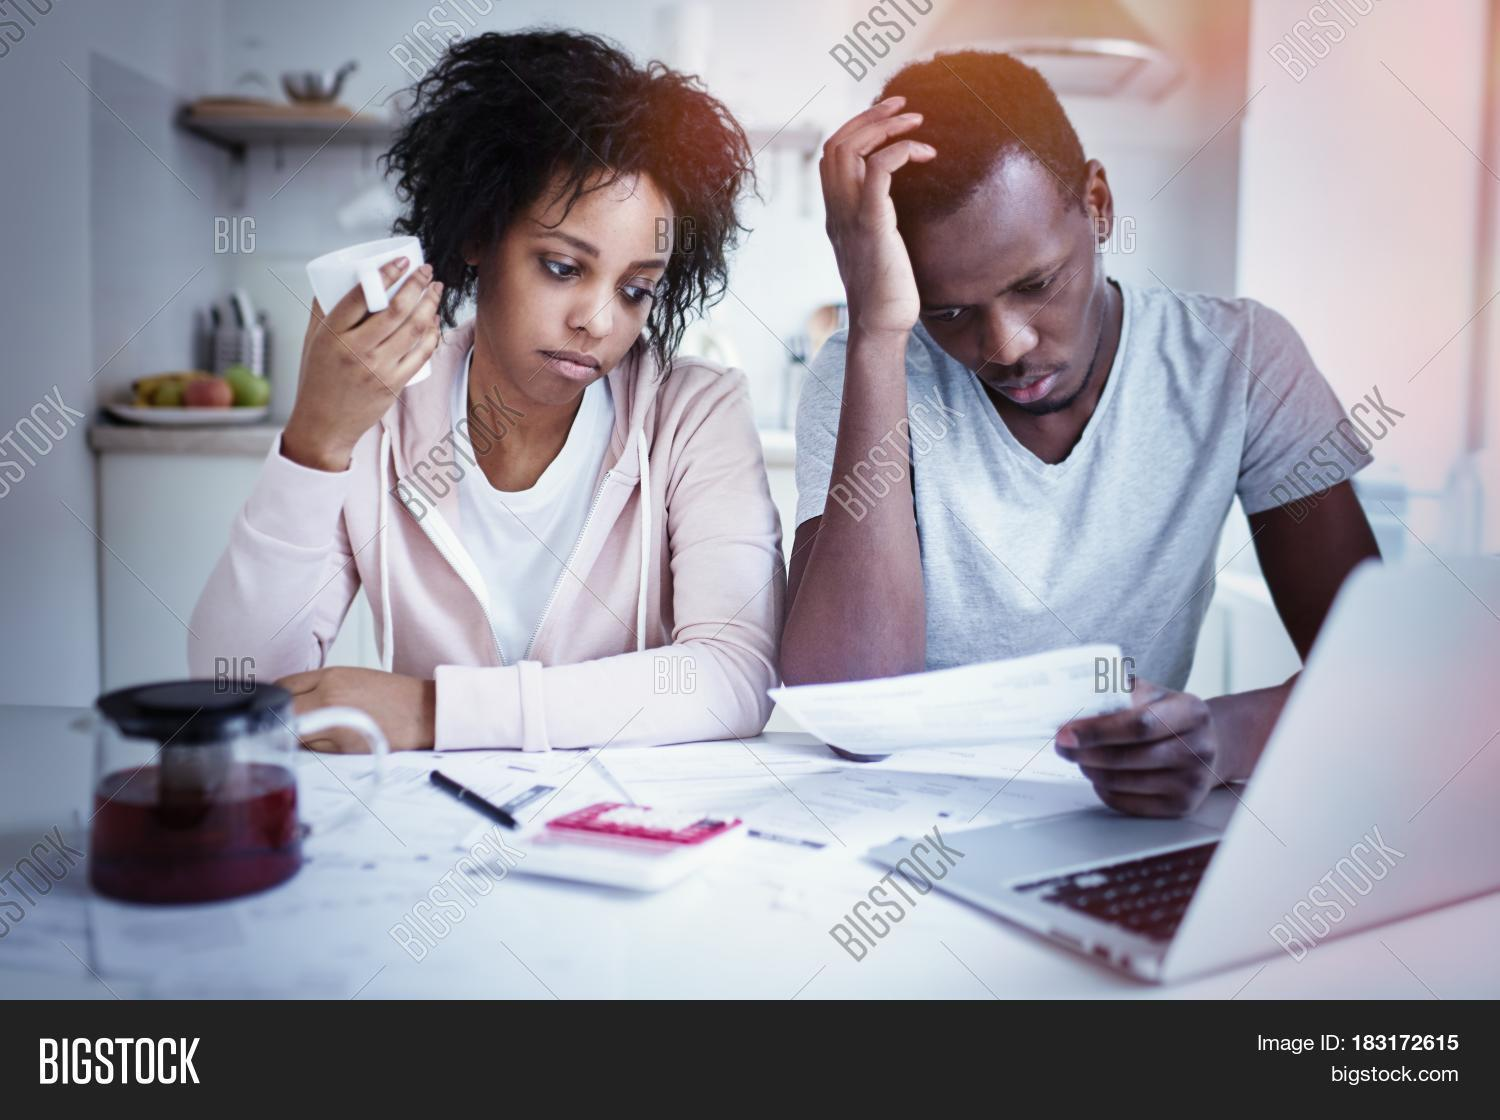 Stressed African American Couple Image & Photo | Bigstock